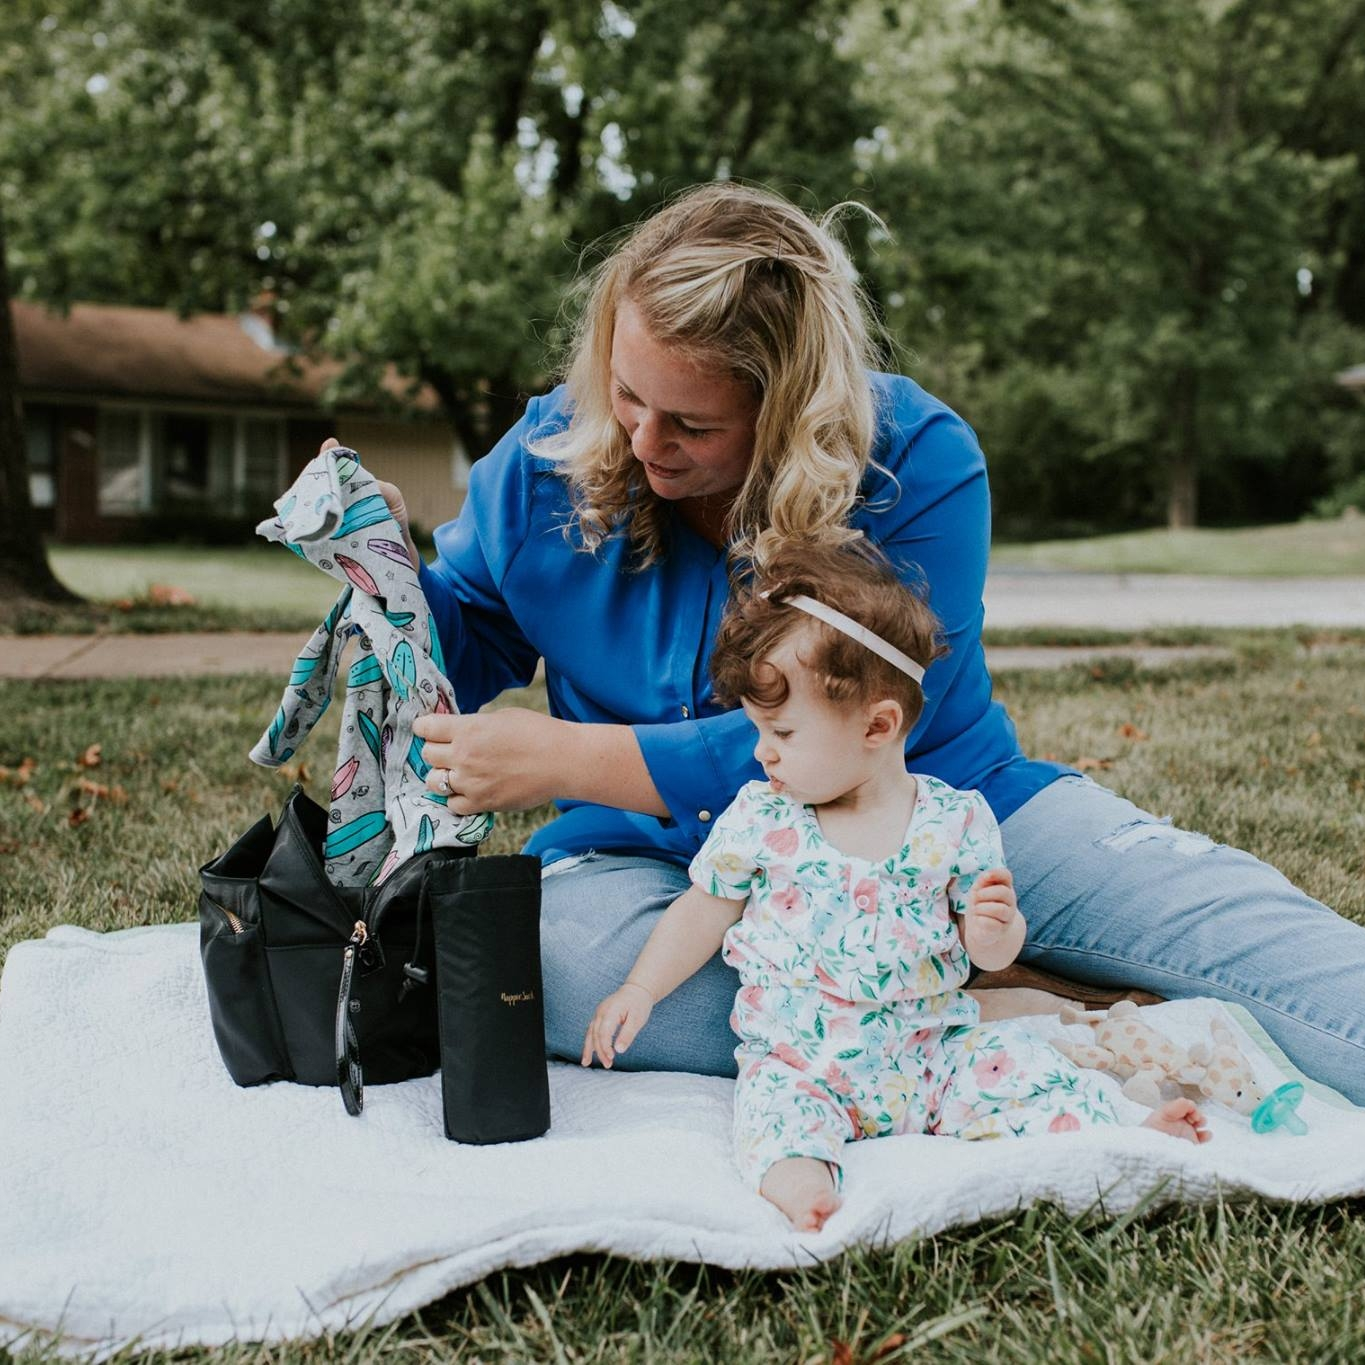 NappieSack - Turn any bag into a diaper bag!